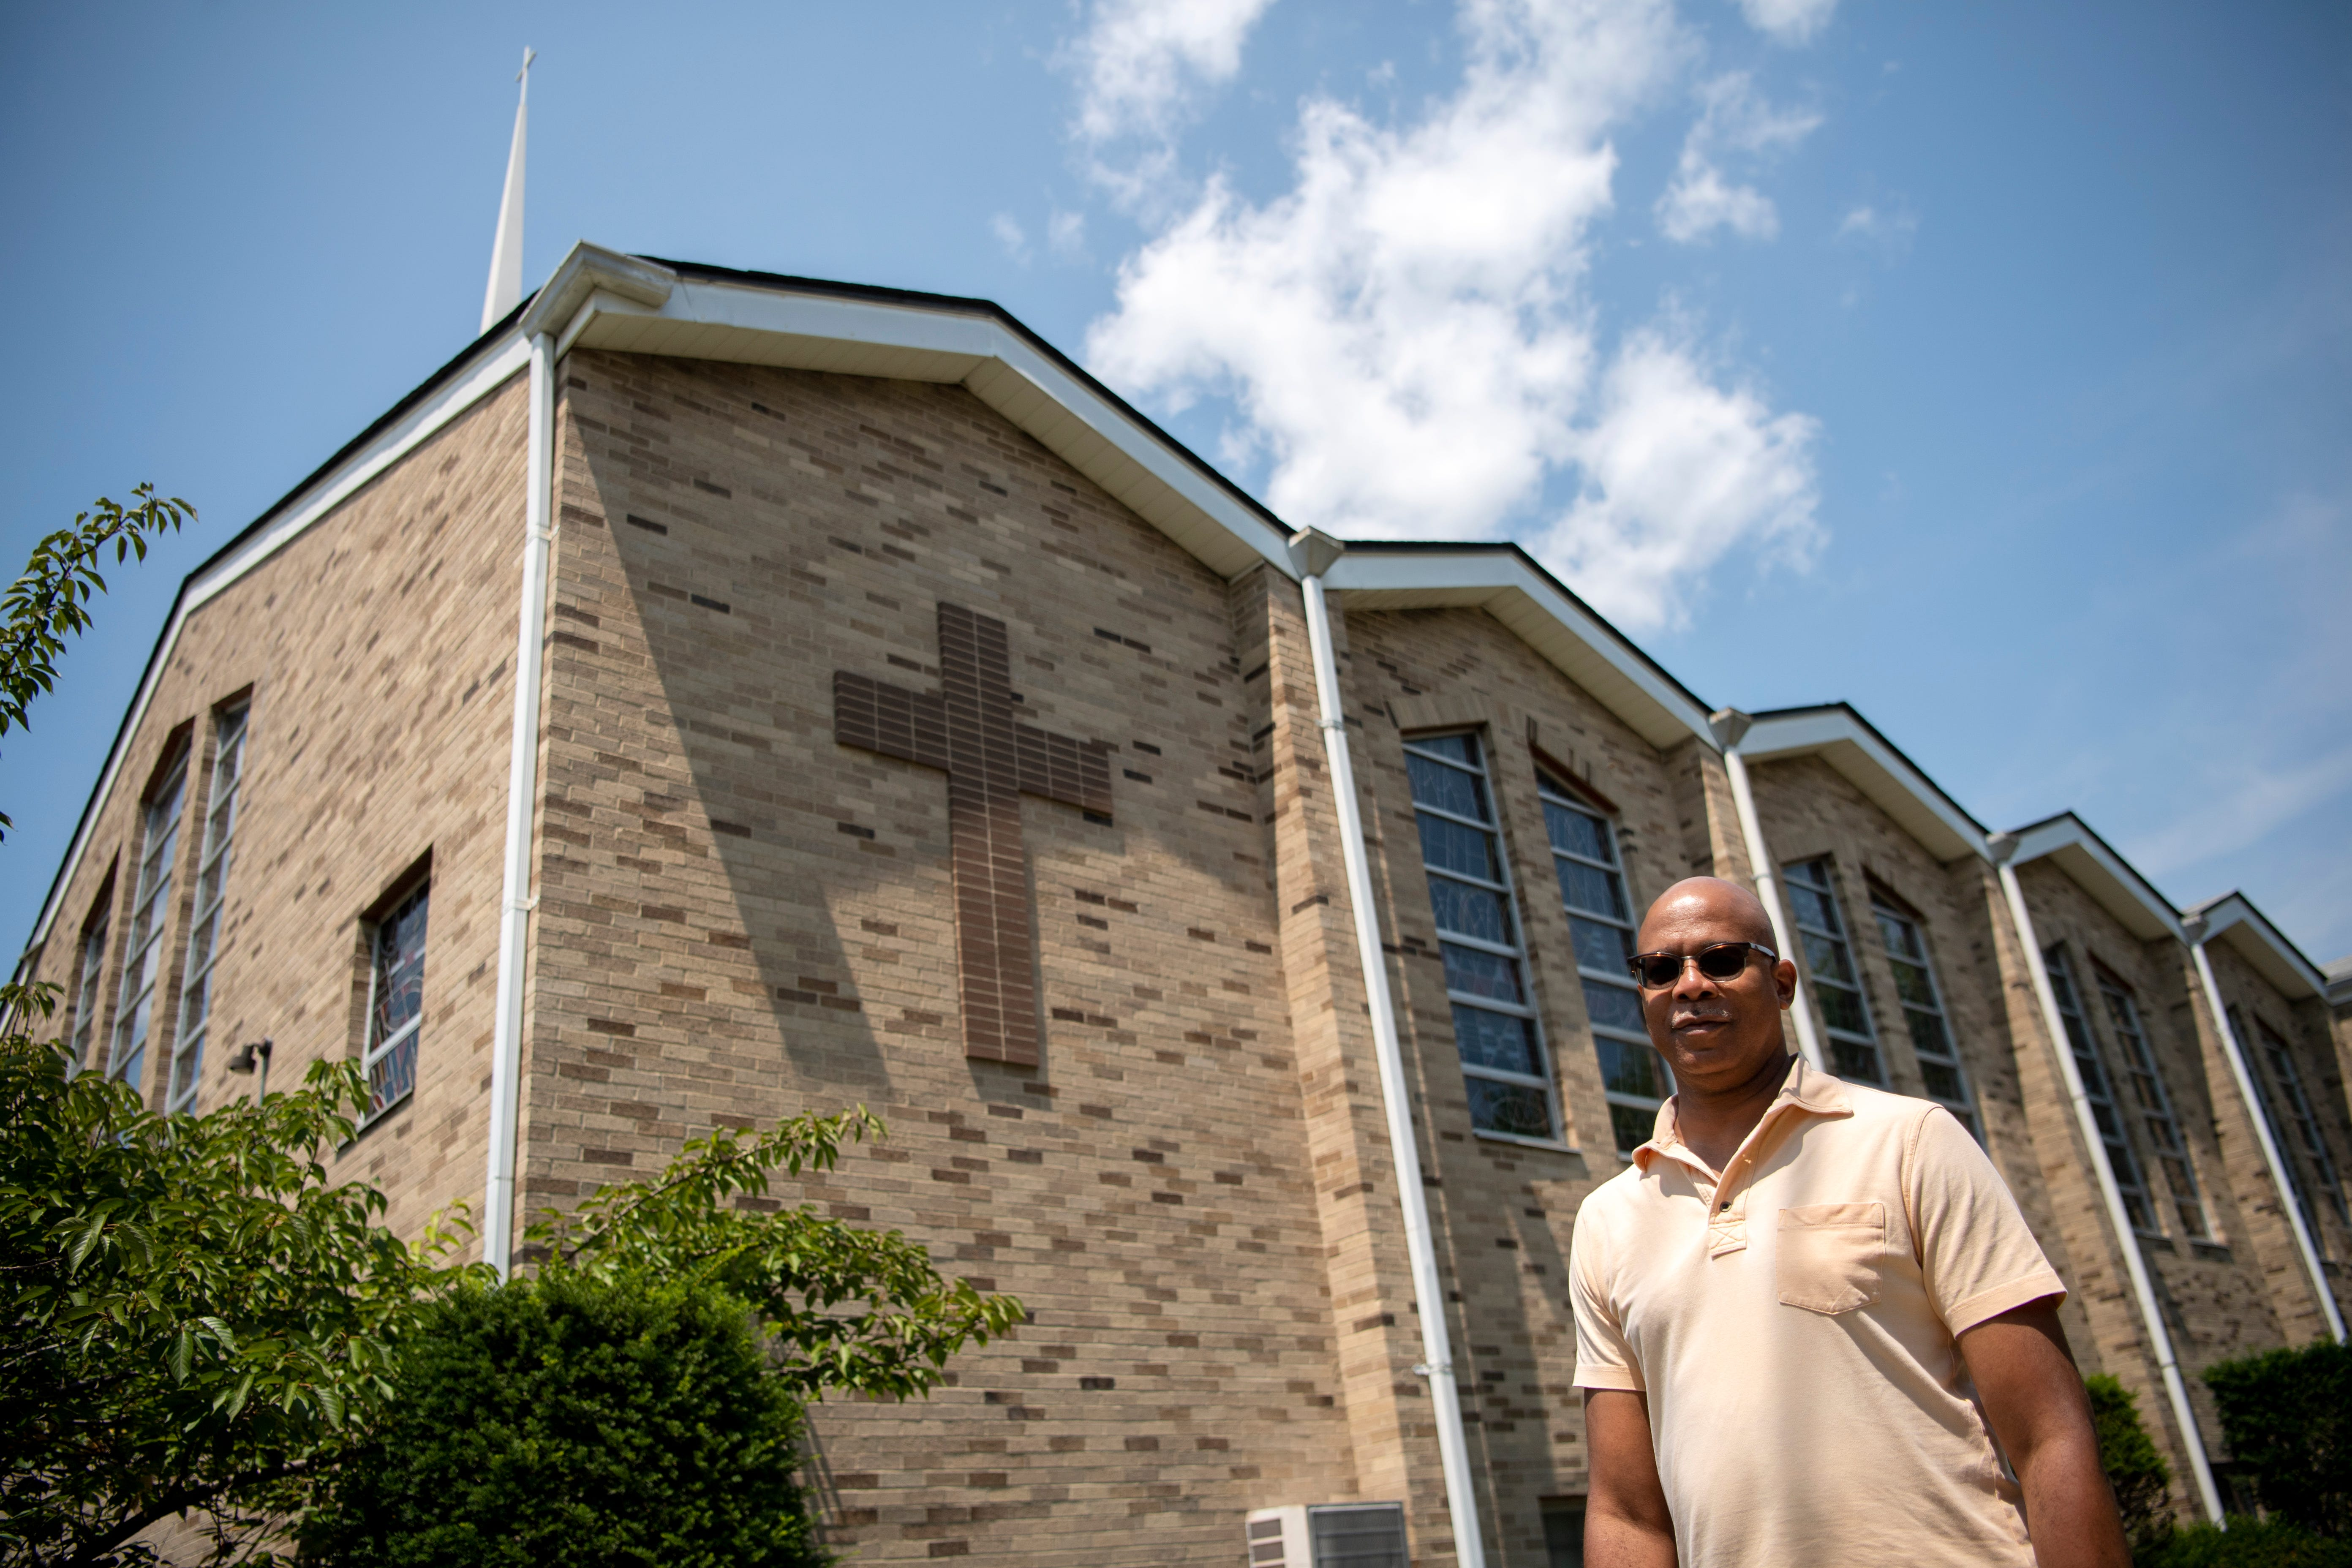 The Rev. Preston Thompson Jr. at Ebenezer Baptist Church on Saturday, July 24, 2021. As a growing number of people leave religion, Thompson is reaching out to young people in the community and trying to lure them back.